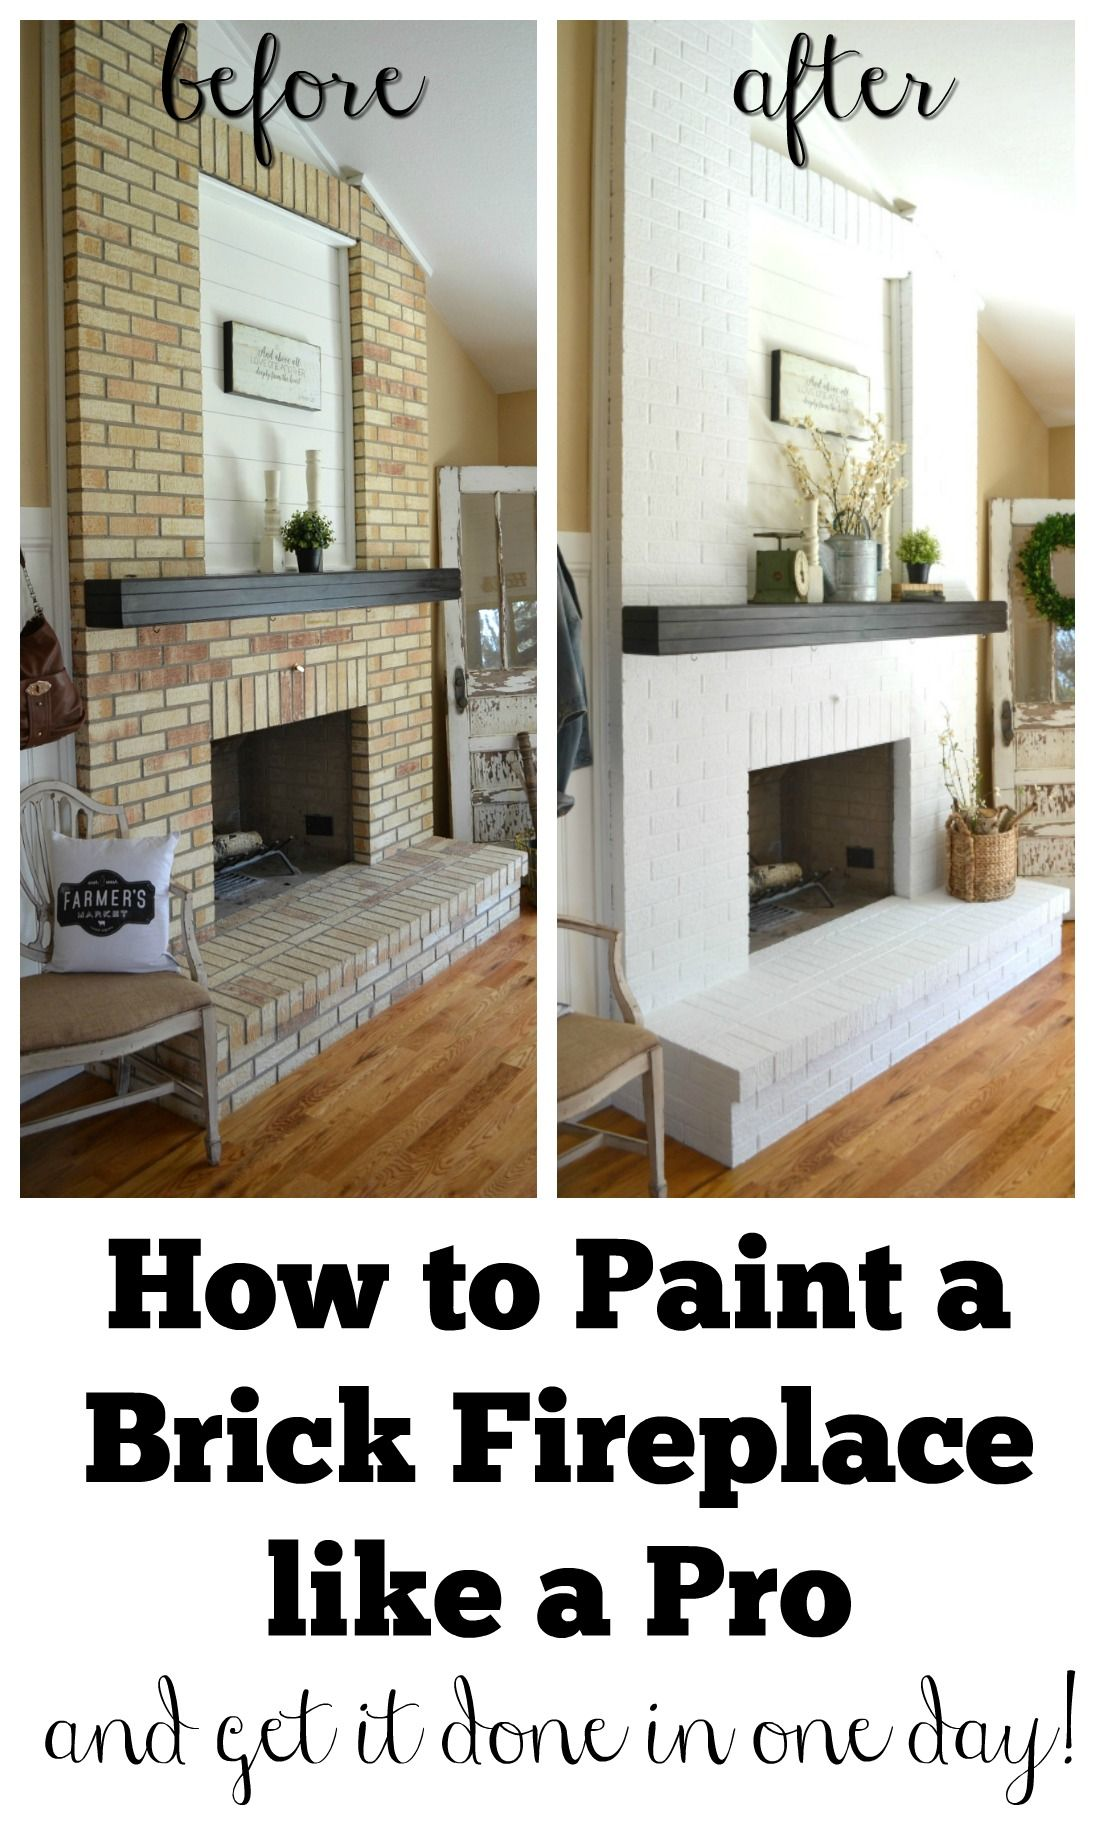 Best Color to Paint Brick Fireplace New How to Paint A Brick Fireplace Home Renovation